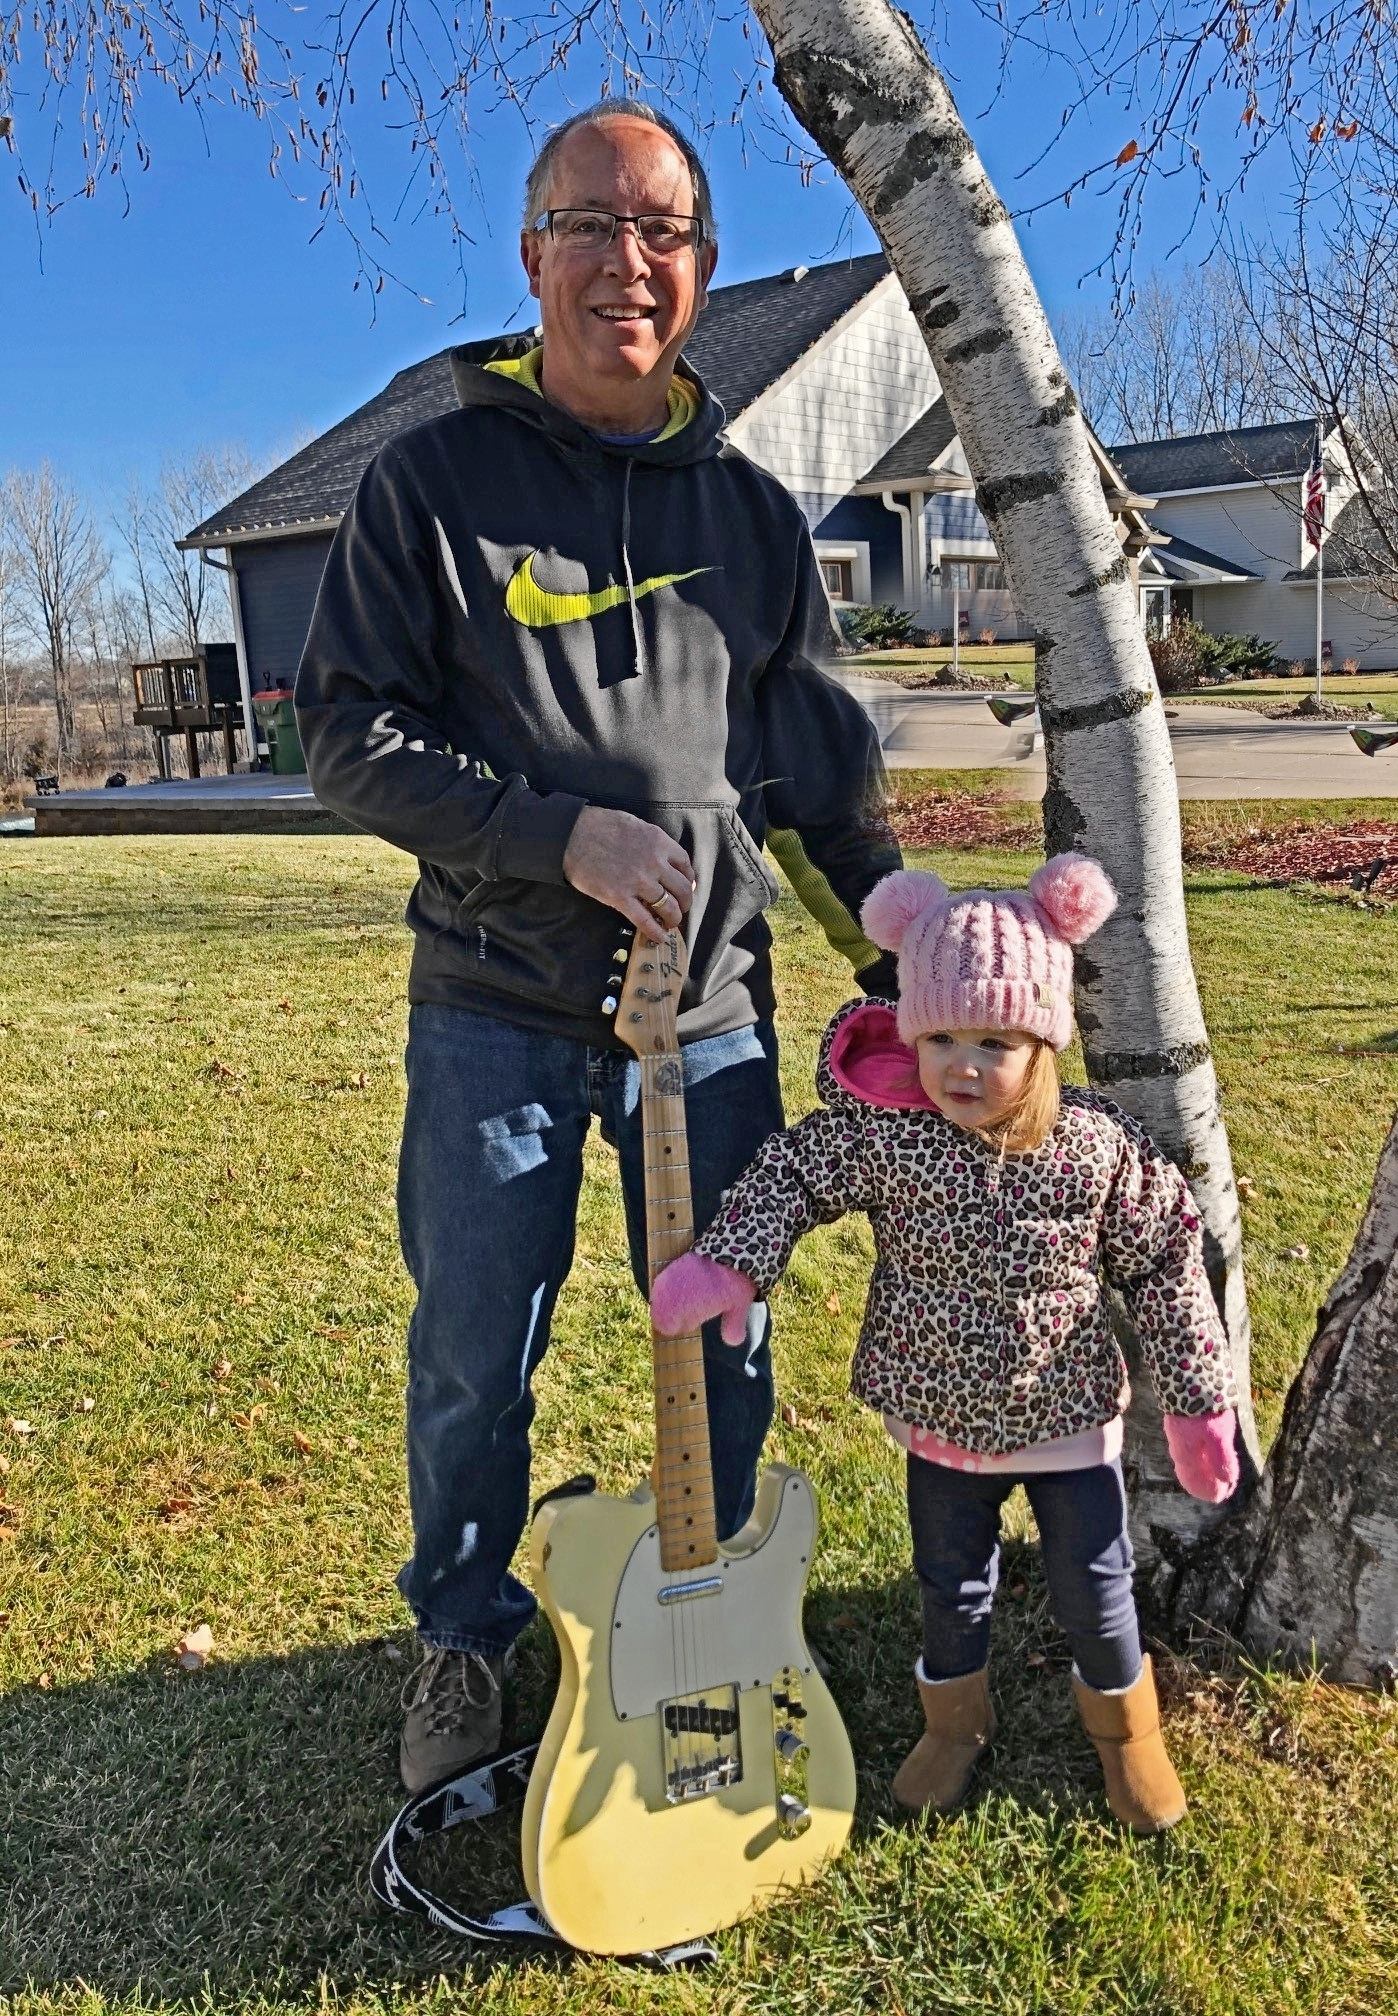 granddad, granddaughter and Fender telecaster